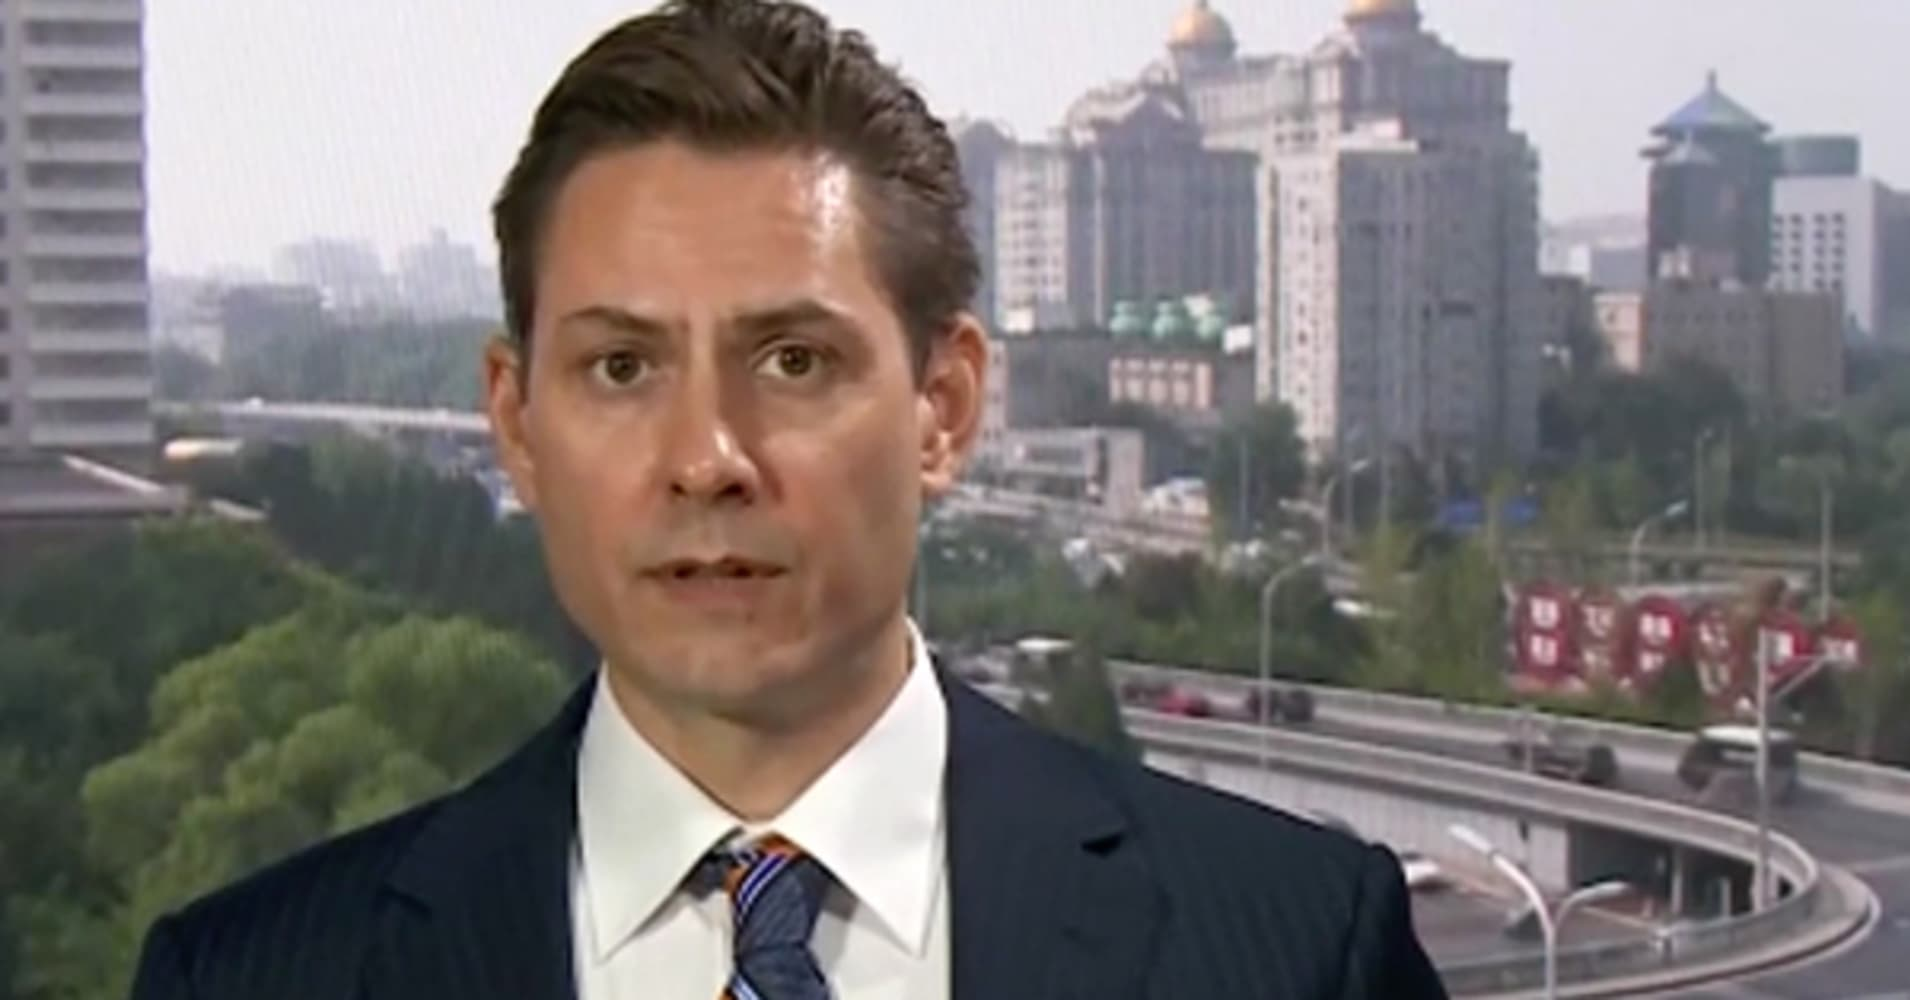 Former Canadian diplomat detained in China